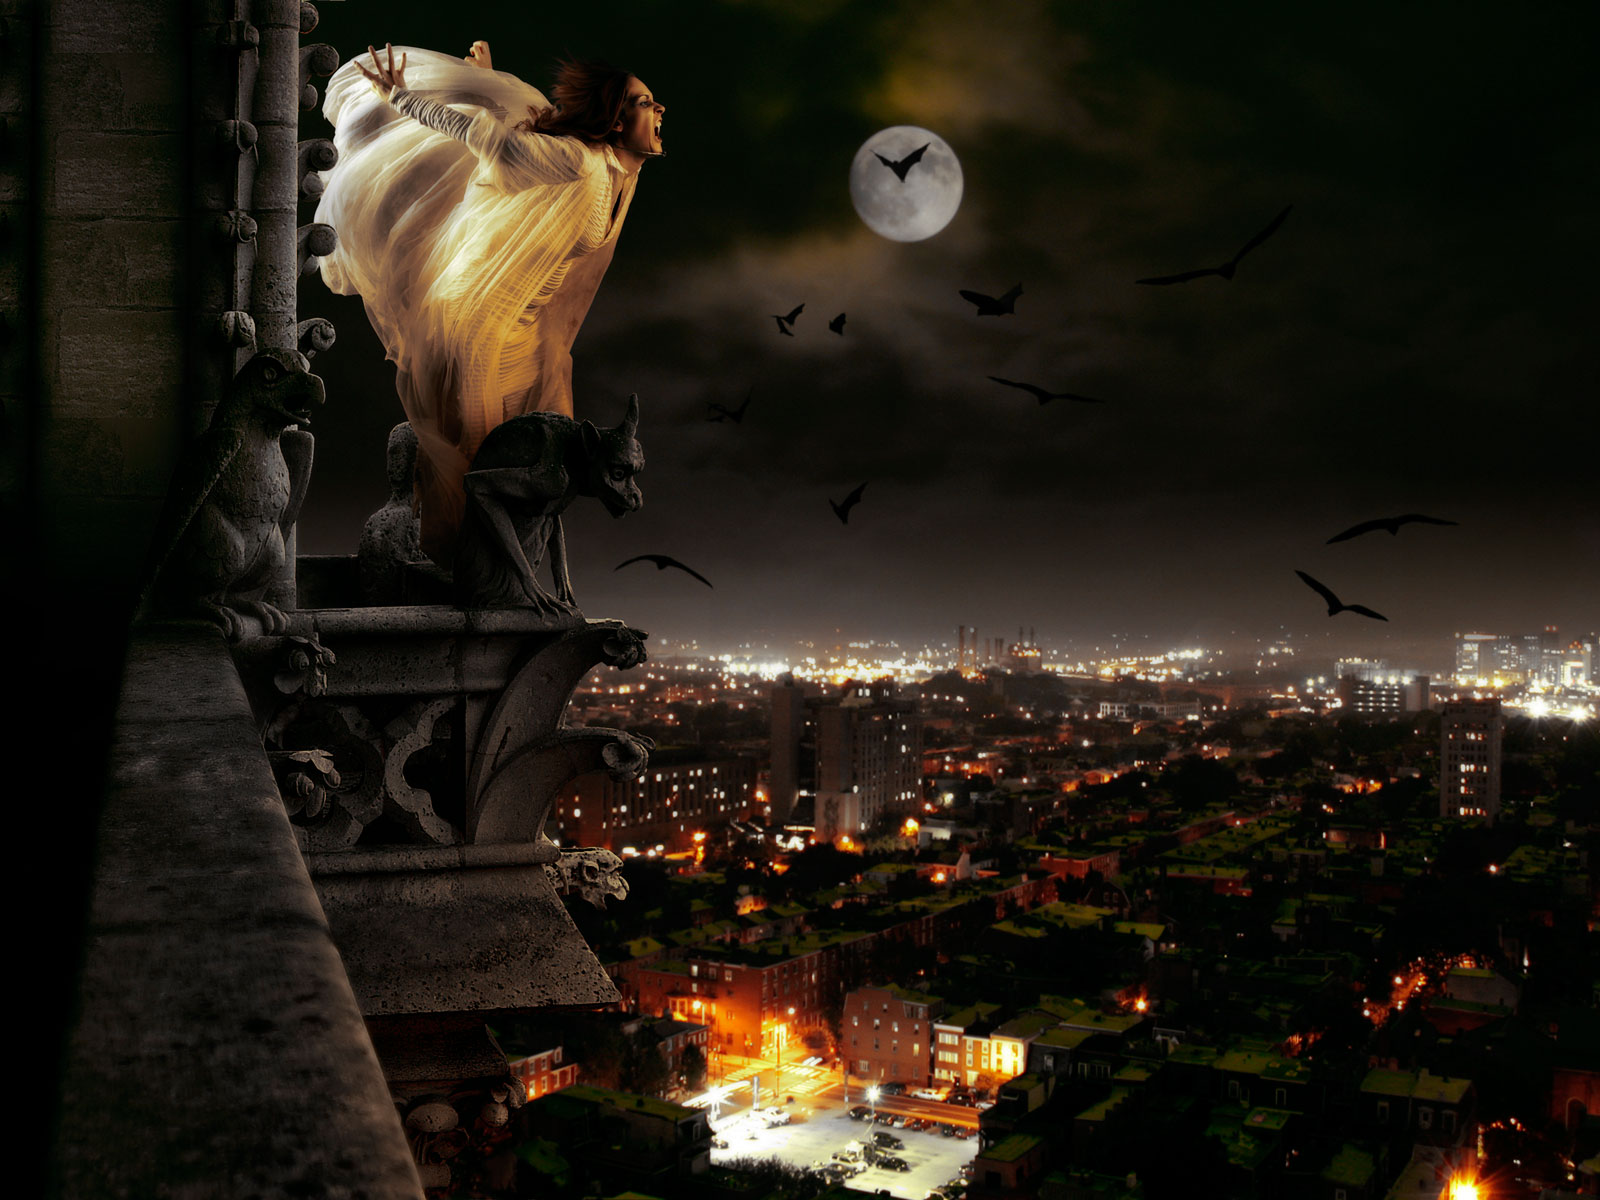 Dark horror gothic vampire women evil cities night 1600x1200